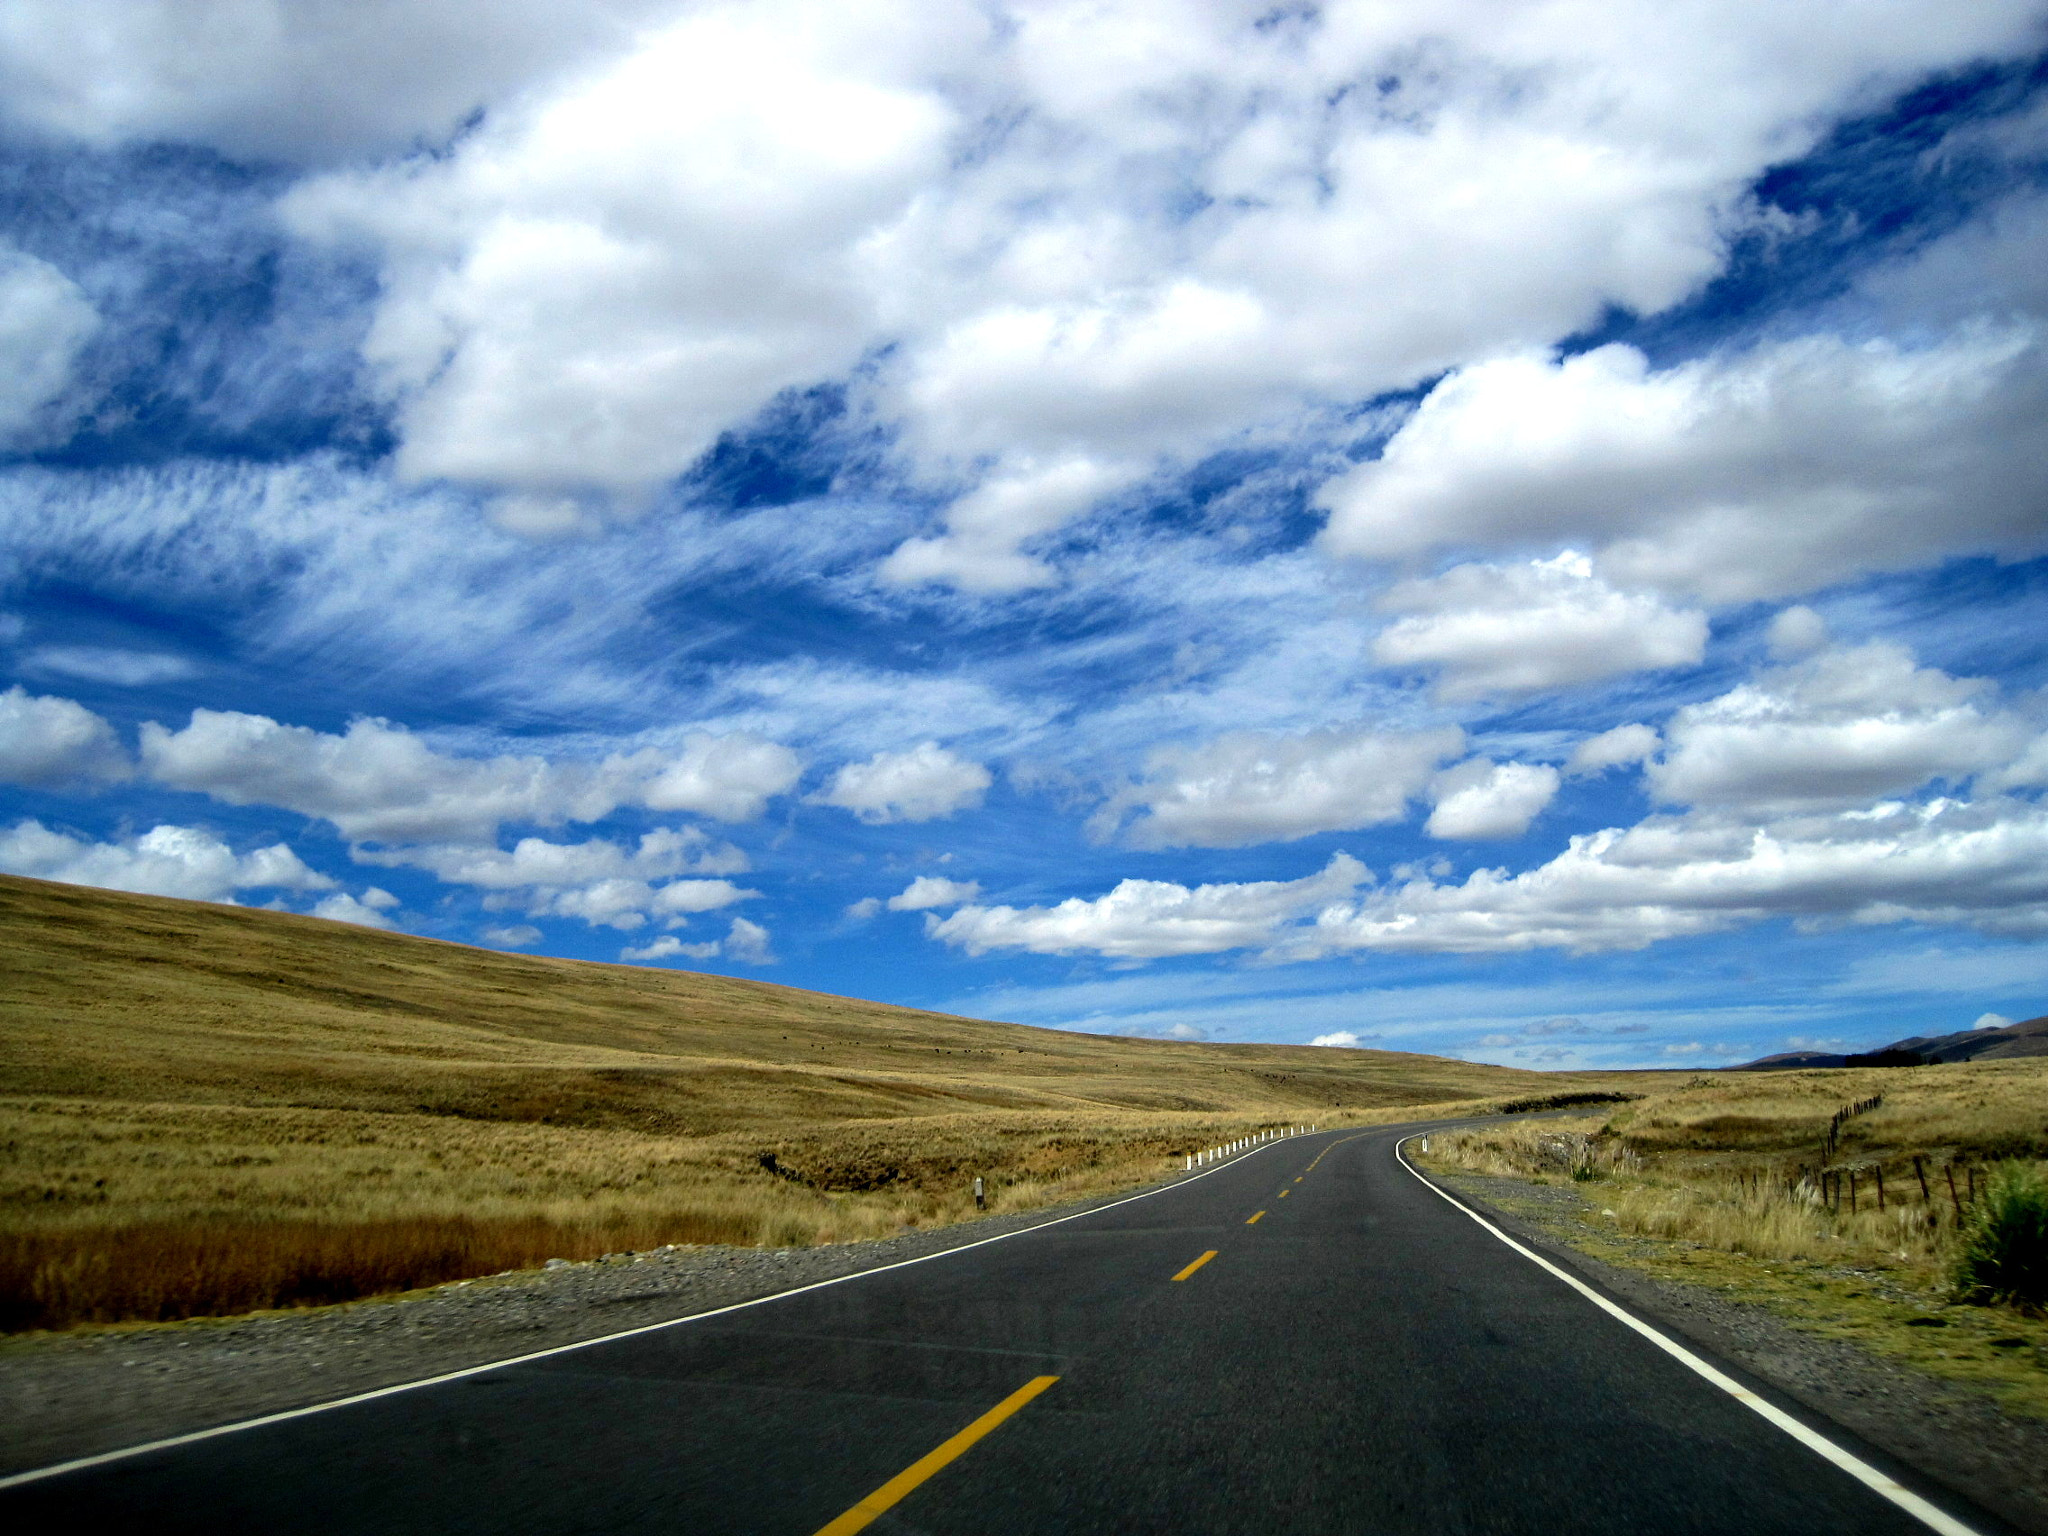 Photograph Peruvian Andean Highway by José Carlos Magot on 500px